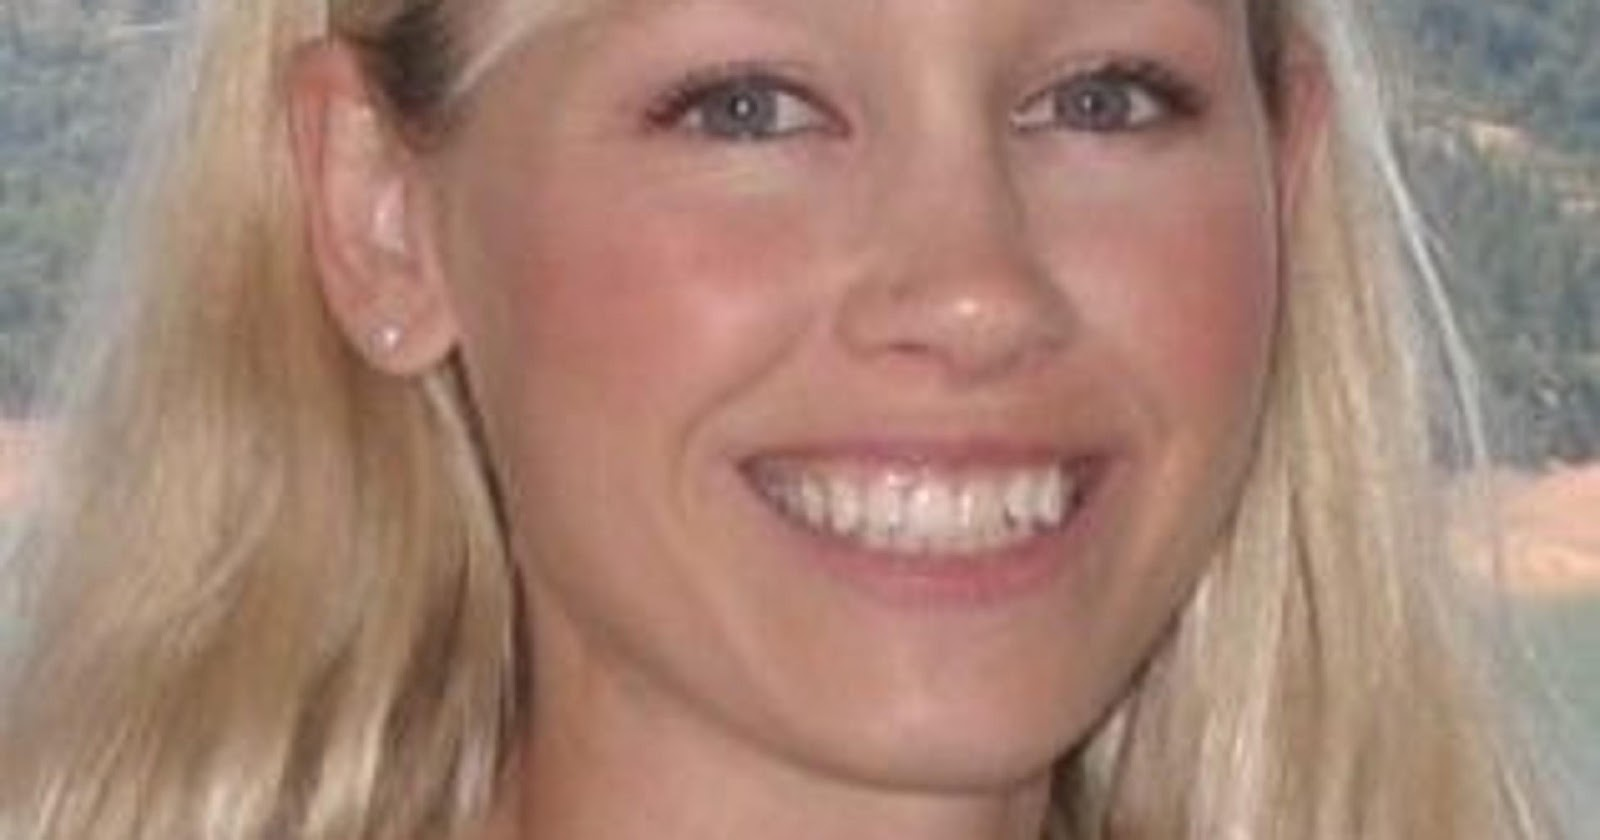 (Sherri Papini vanished November 2, 2016 while jogging near her Redding, California home and reappeared 22 days later.)